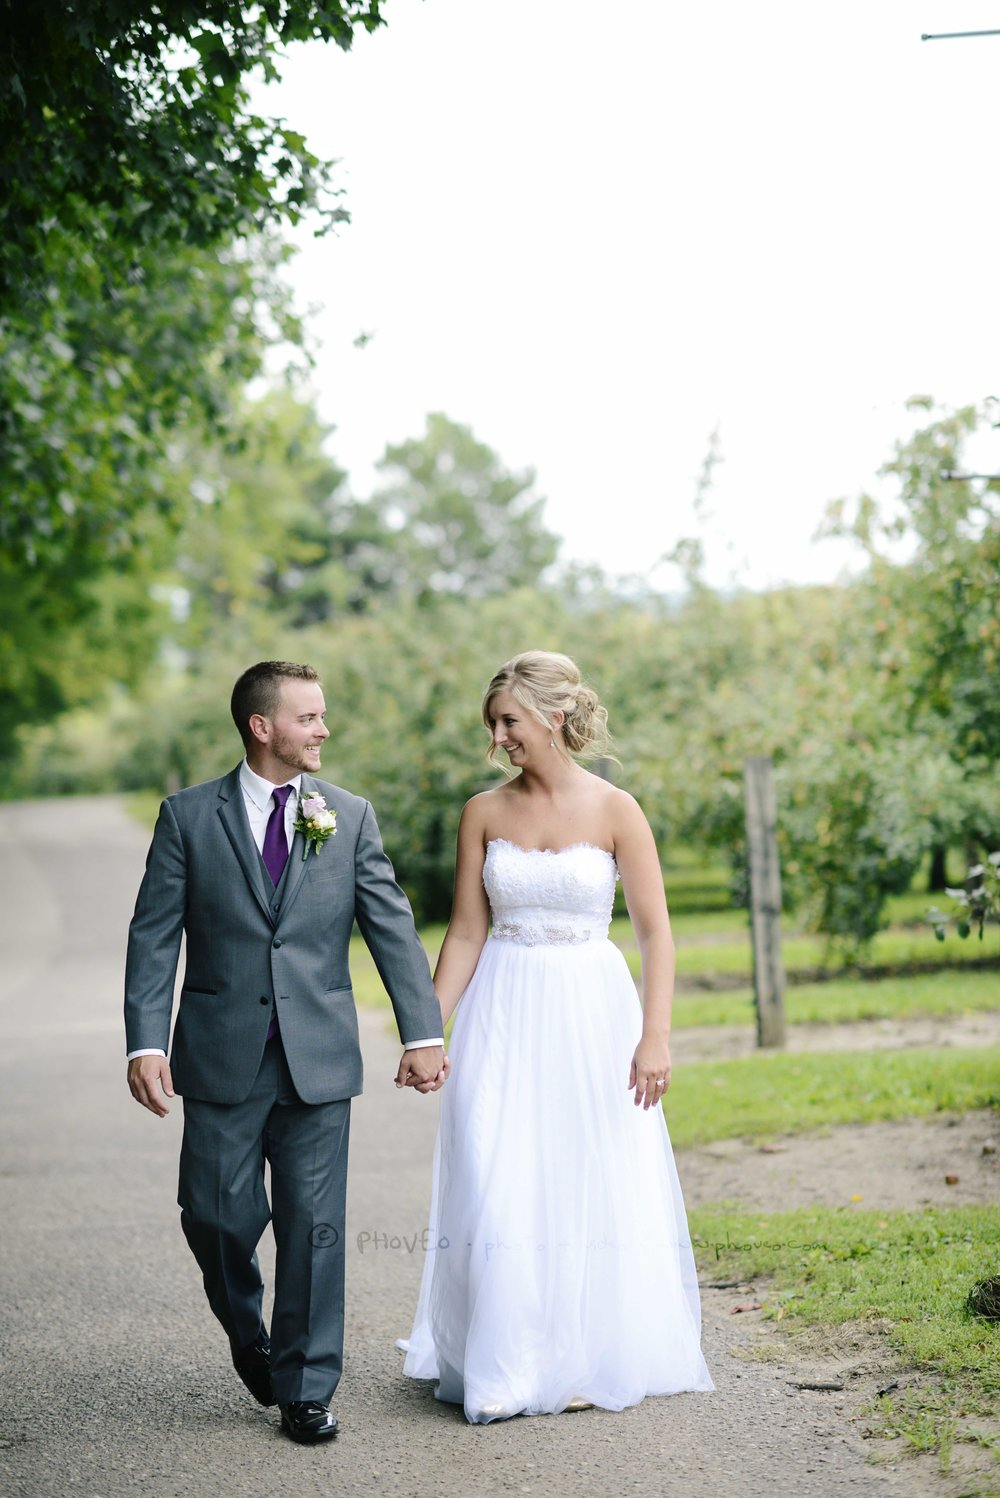 WM_20160826_Katelyn+Tony_64.jpg